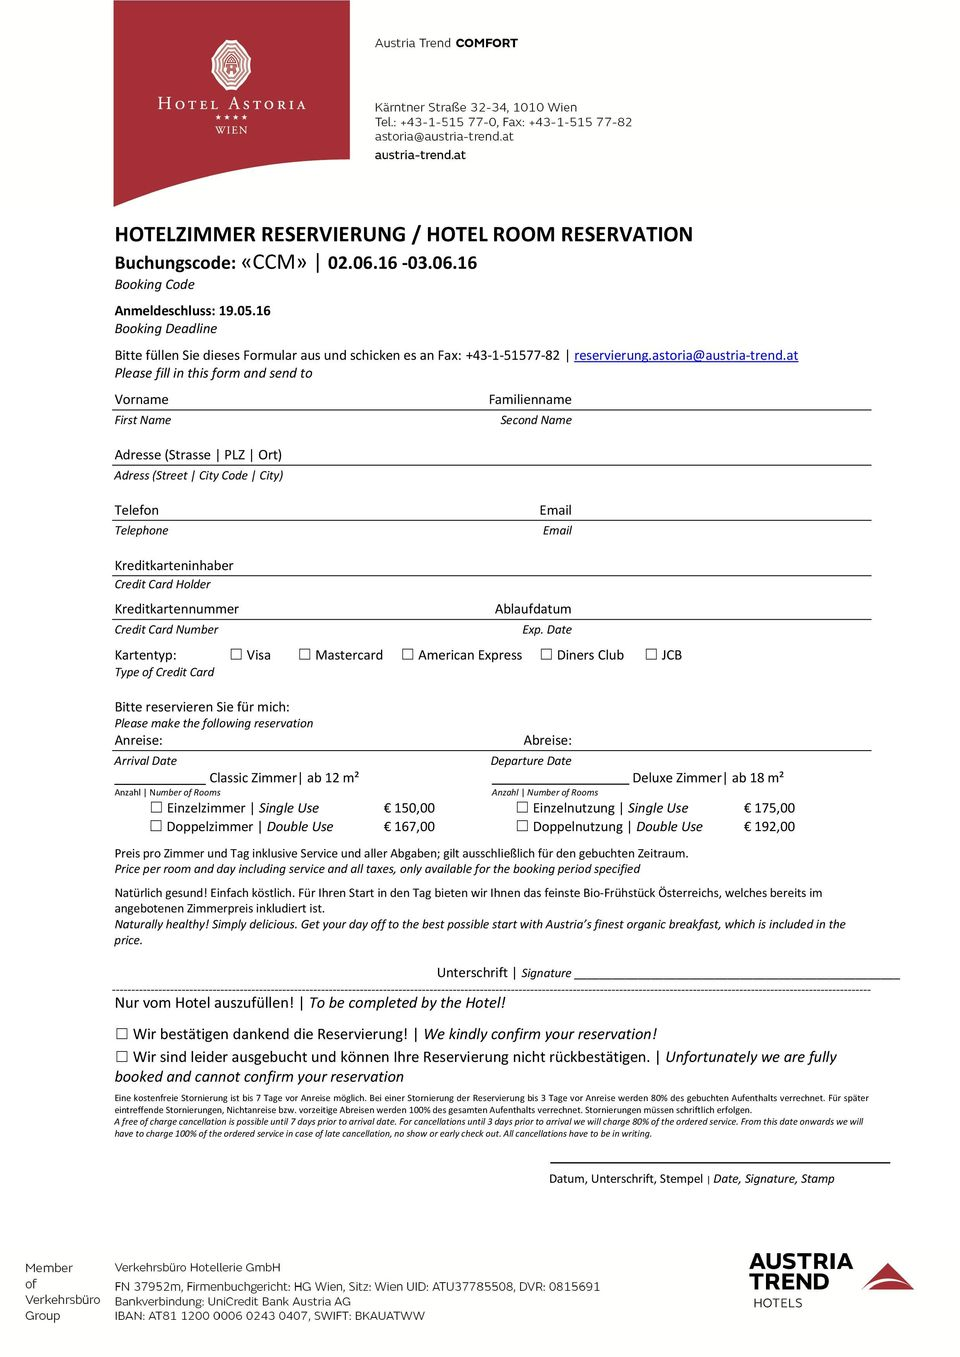 at Please fill in this form and send to Vorname First Name Adresse (Strasse PLZ Ort) Adress (Street City Code City) Familienname Second Name Telefon Telephone Email Email Kreditkarteninhaber Credit